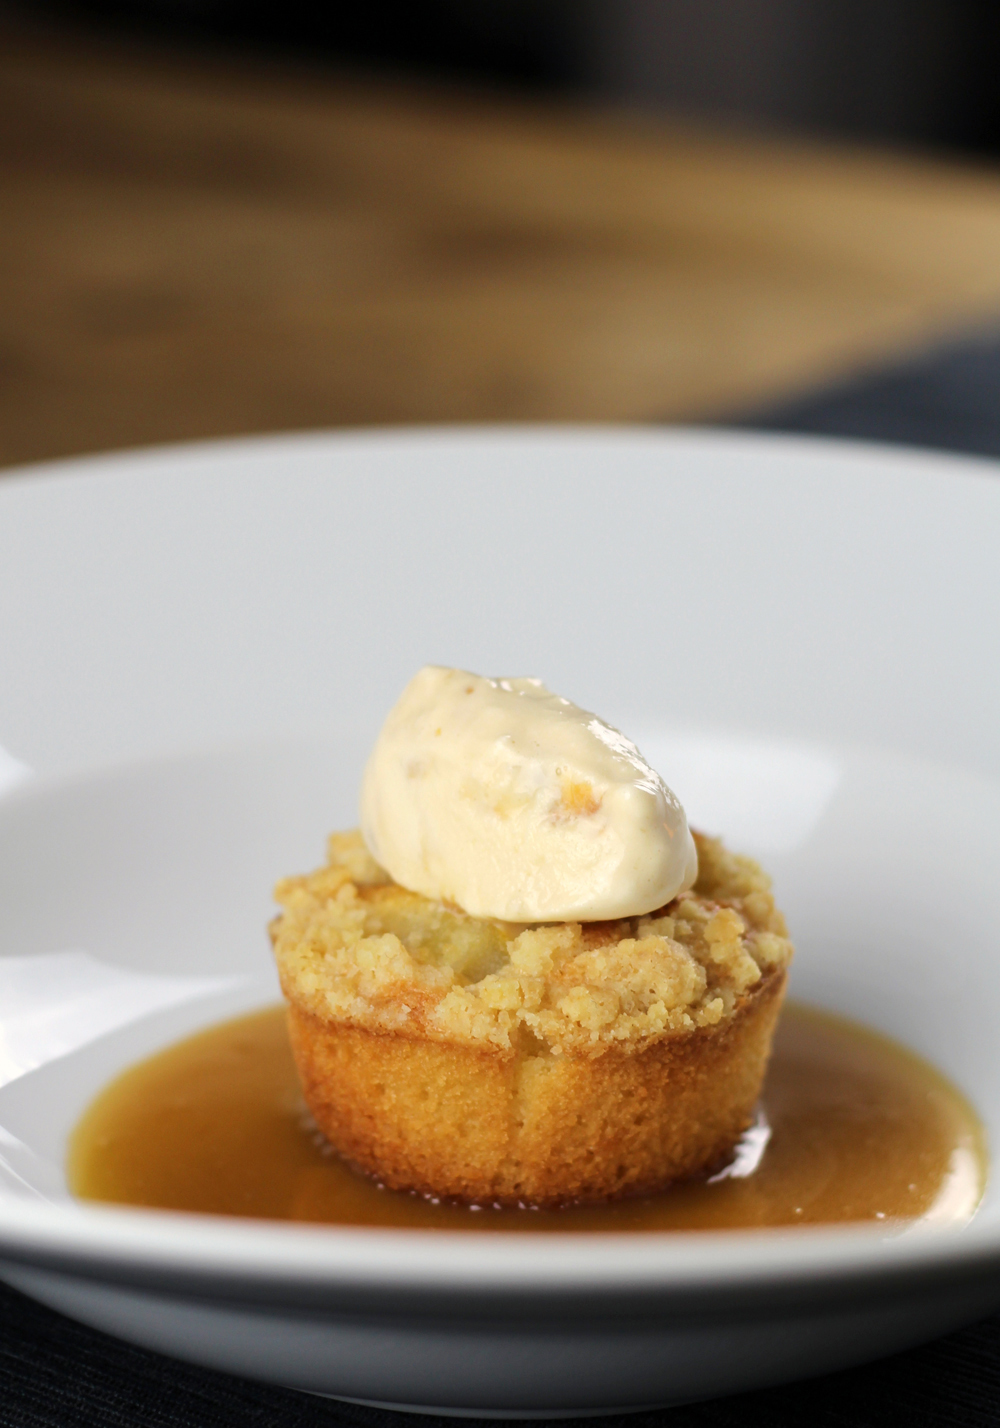 Pear Crumble Cake with Amaretto Toffee Sauce and Salted Caramel Ice Cream